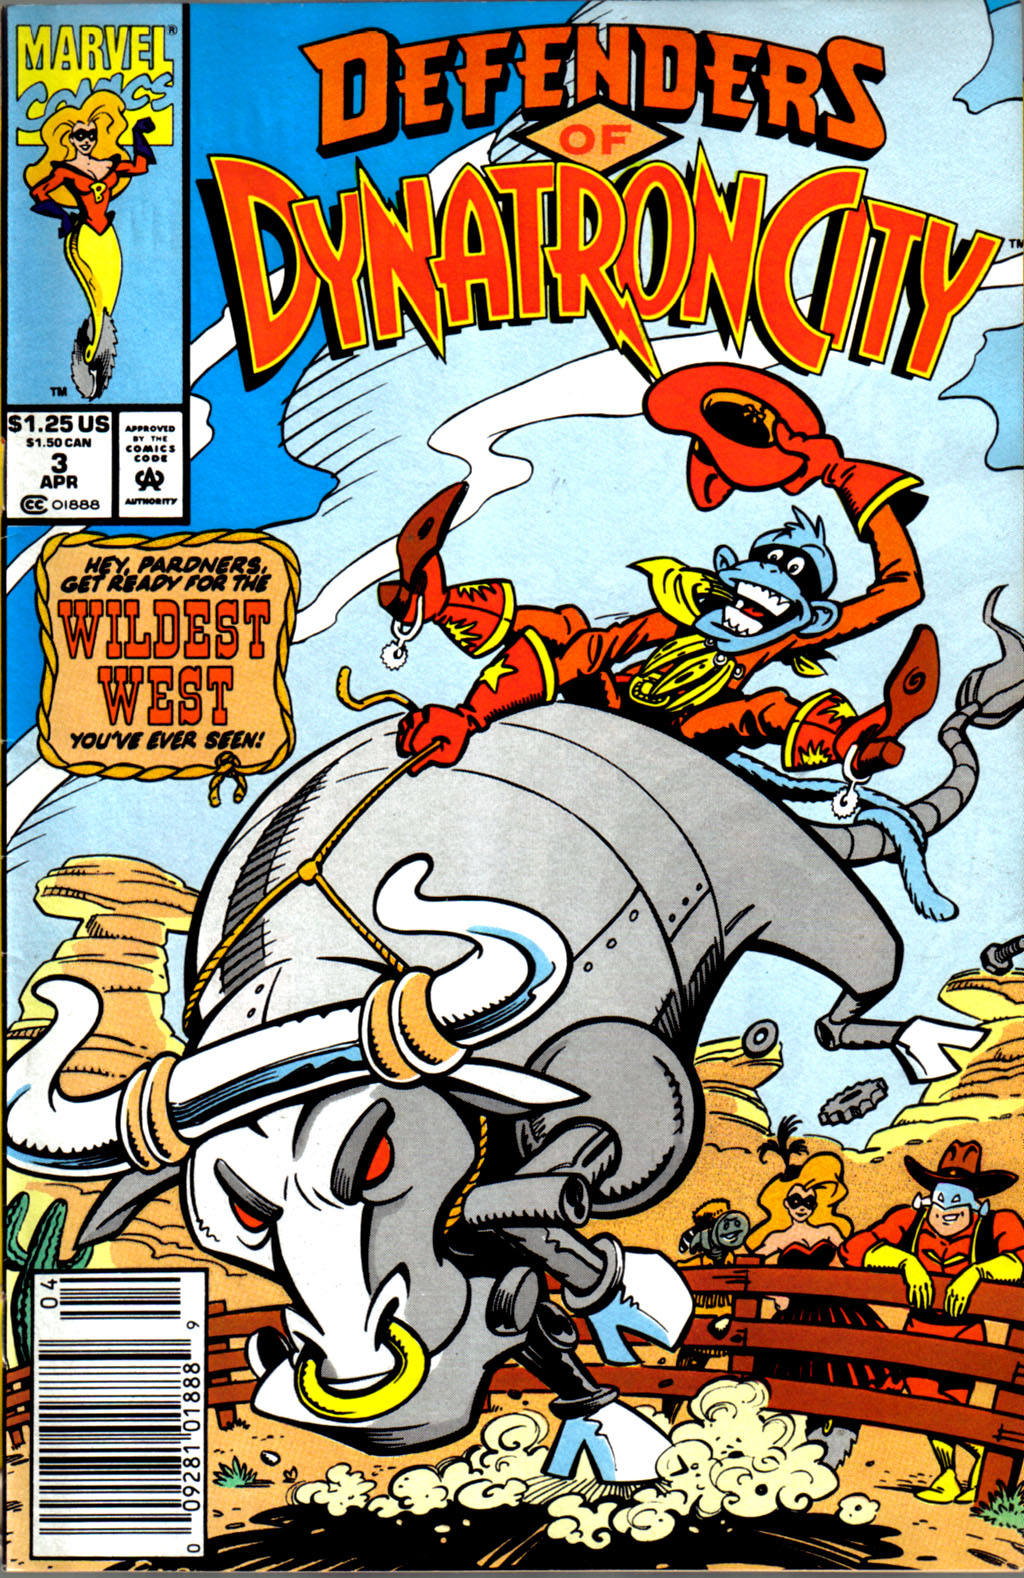 Read online Defenders of Dynatron City comic -  Issue #3 - 1